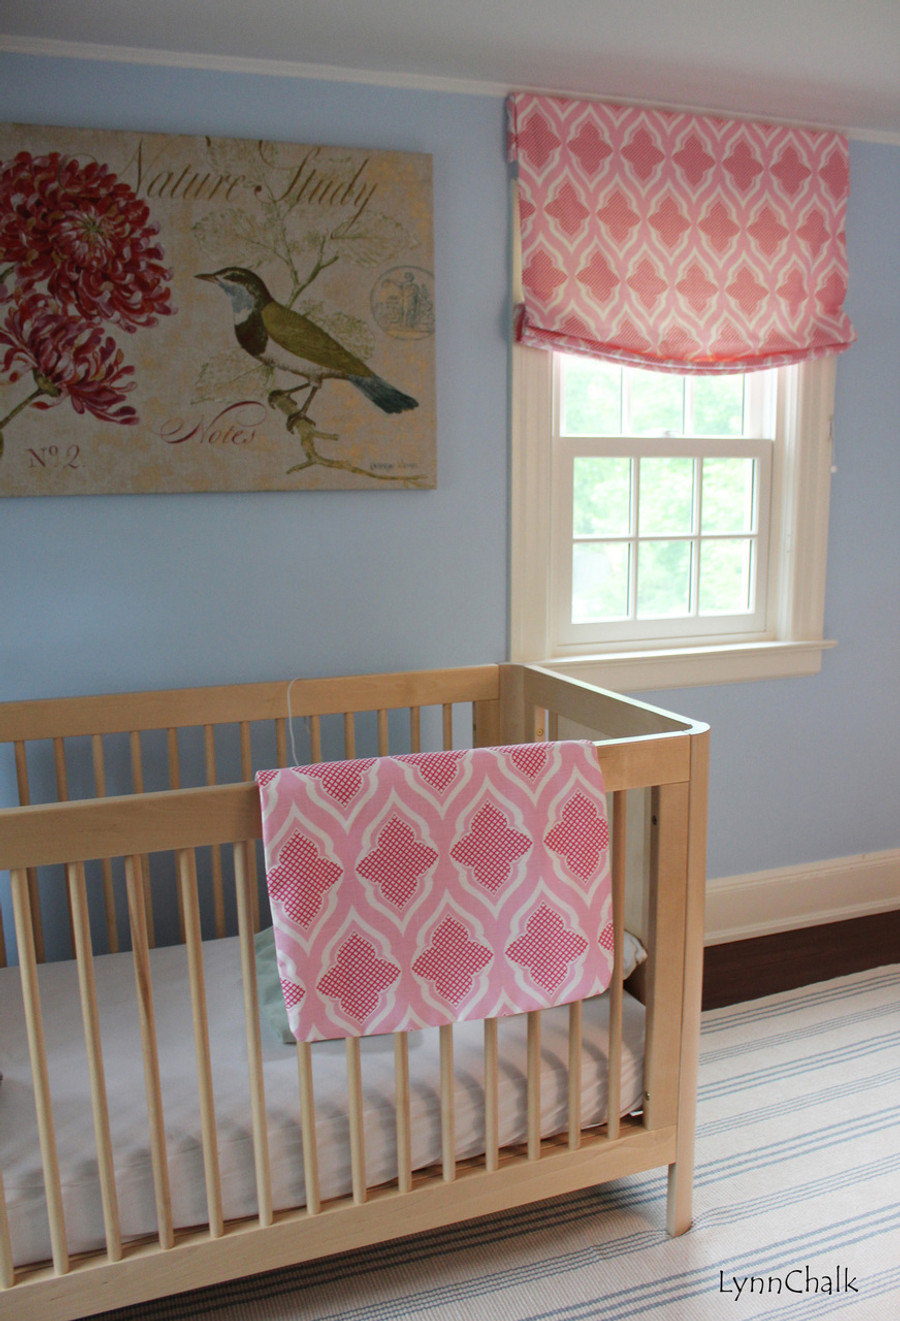 Relaxed Roman Shades in Christopher Farr Venecia in Hot Pink